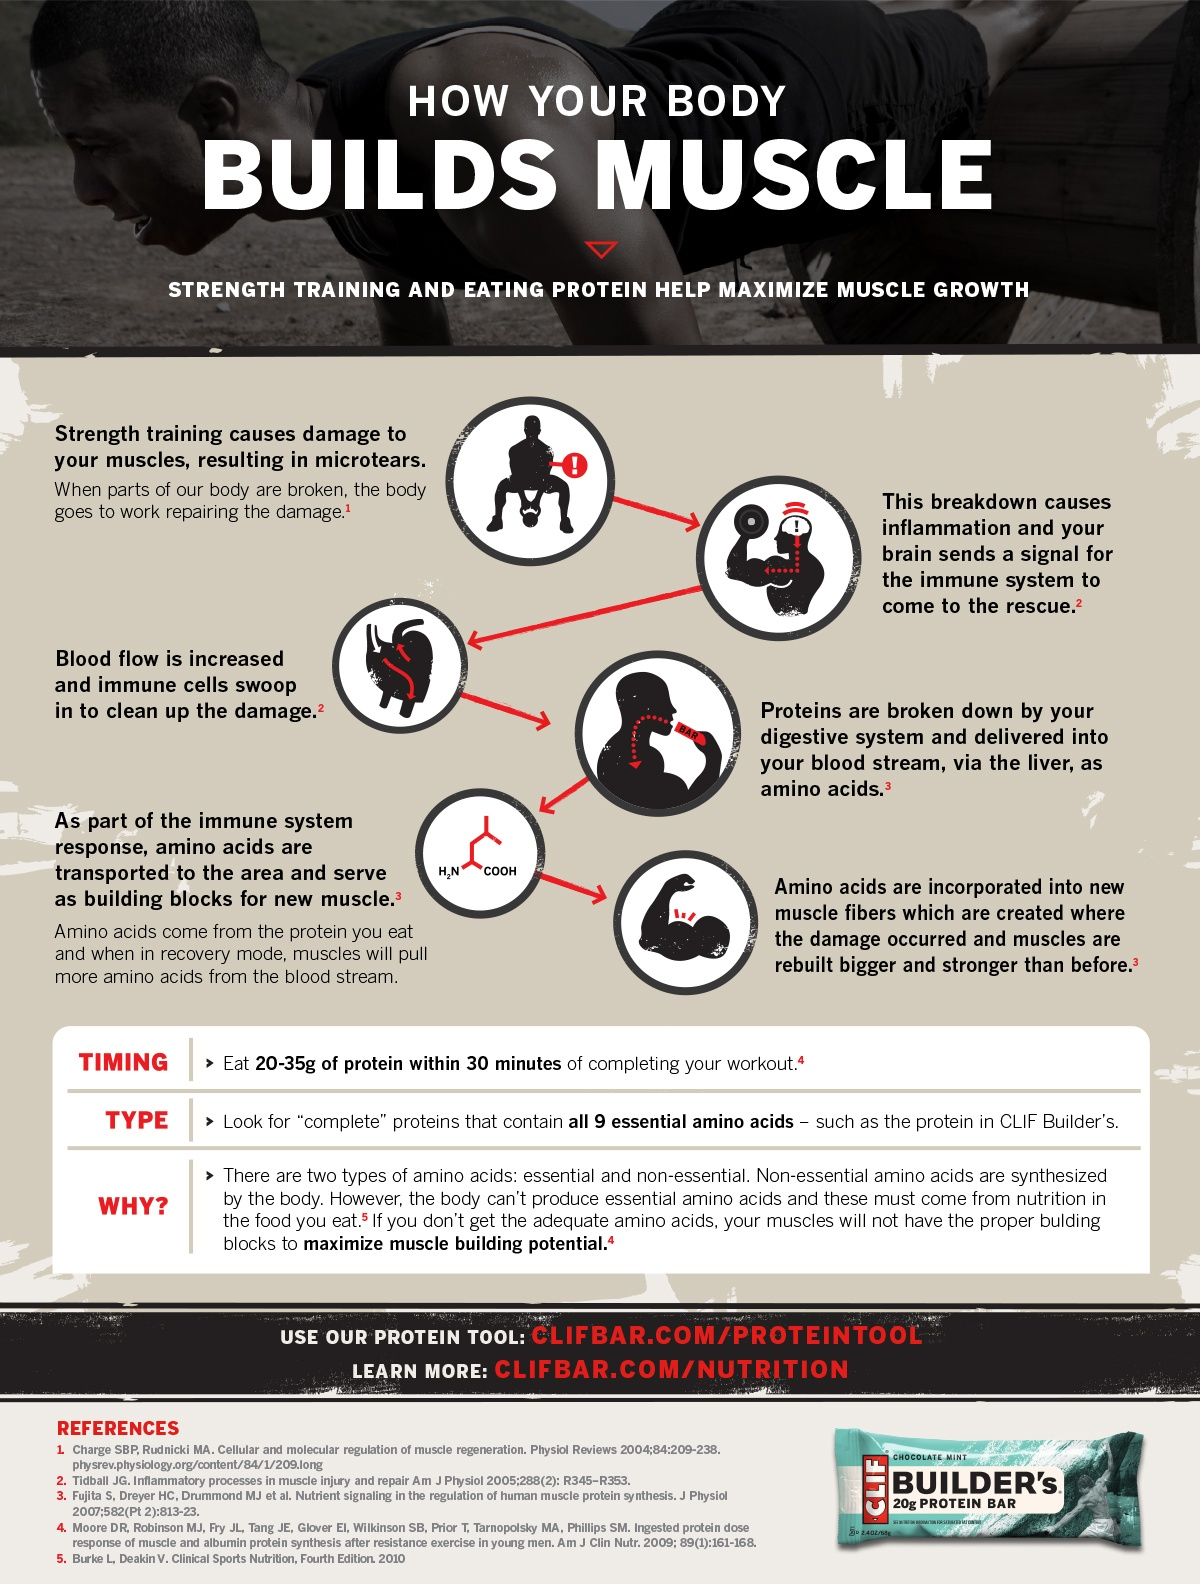 How Your Body Builds Muscle